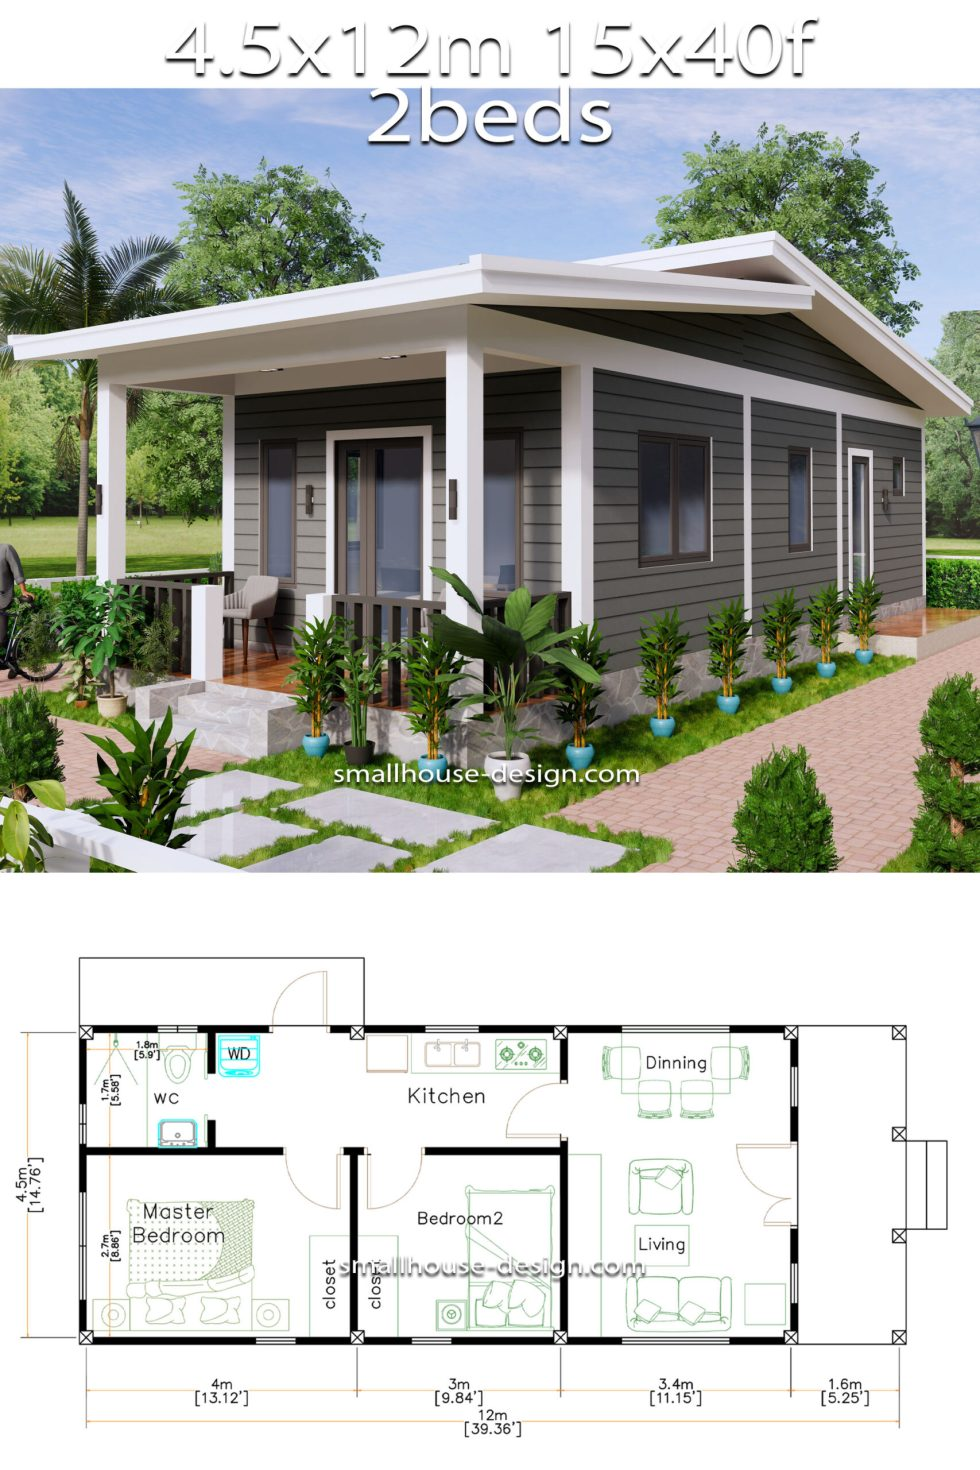 15x40 Small House Design 2 Bedrooms Shed Roof full Detailing plan